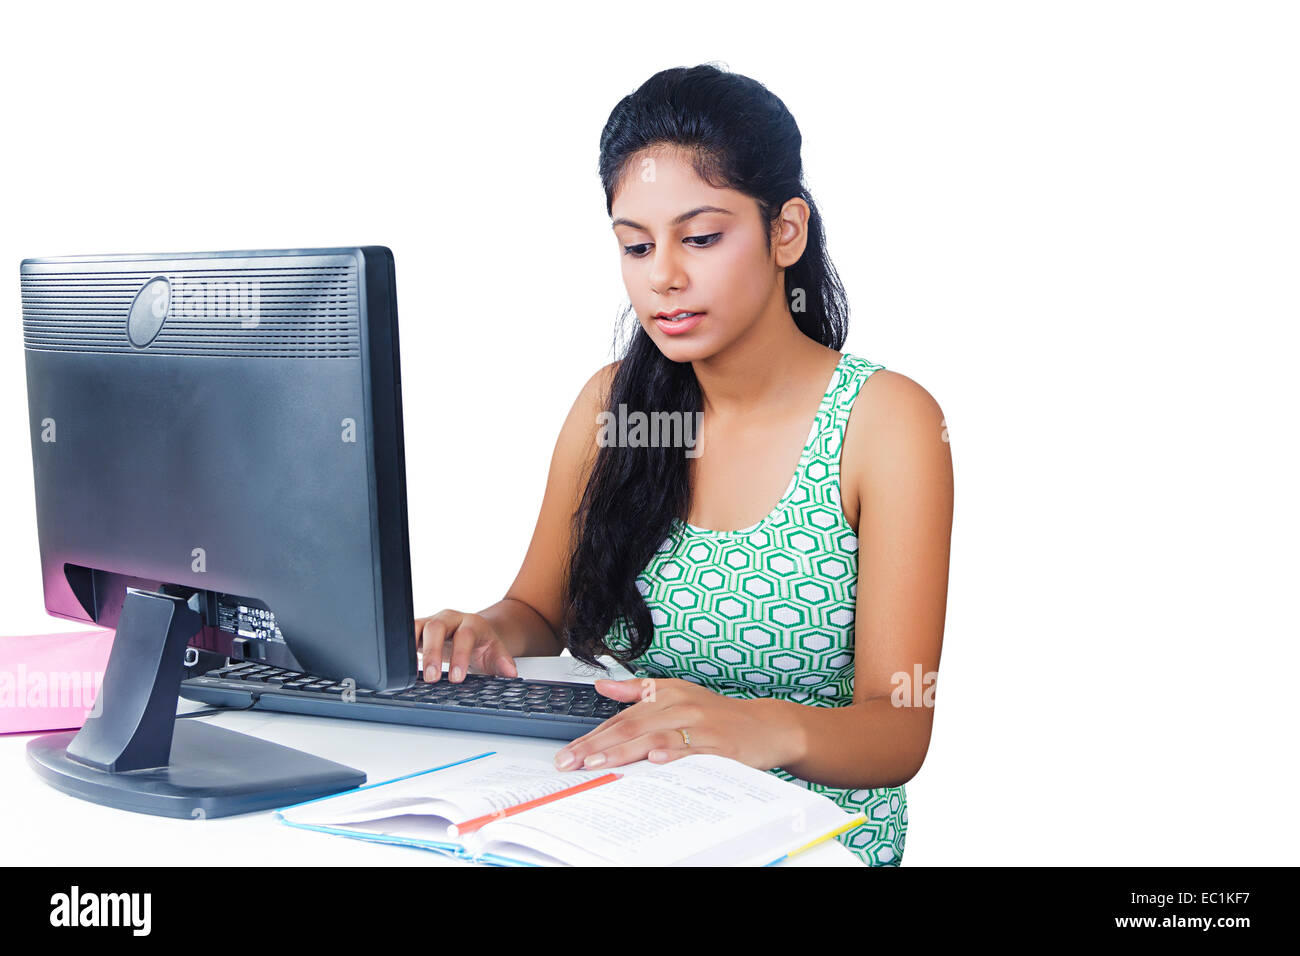 indian college girl study stock photo: 76254619 - alamy